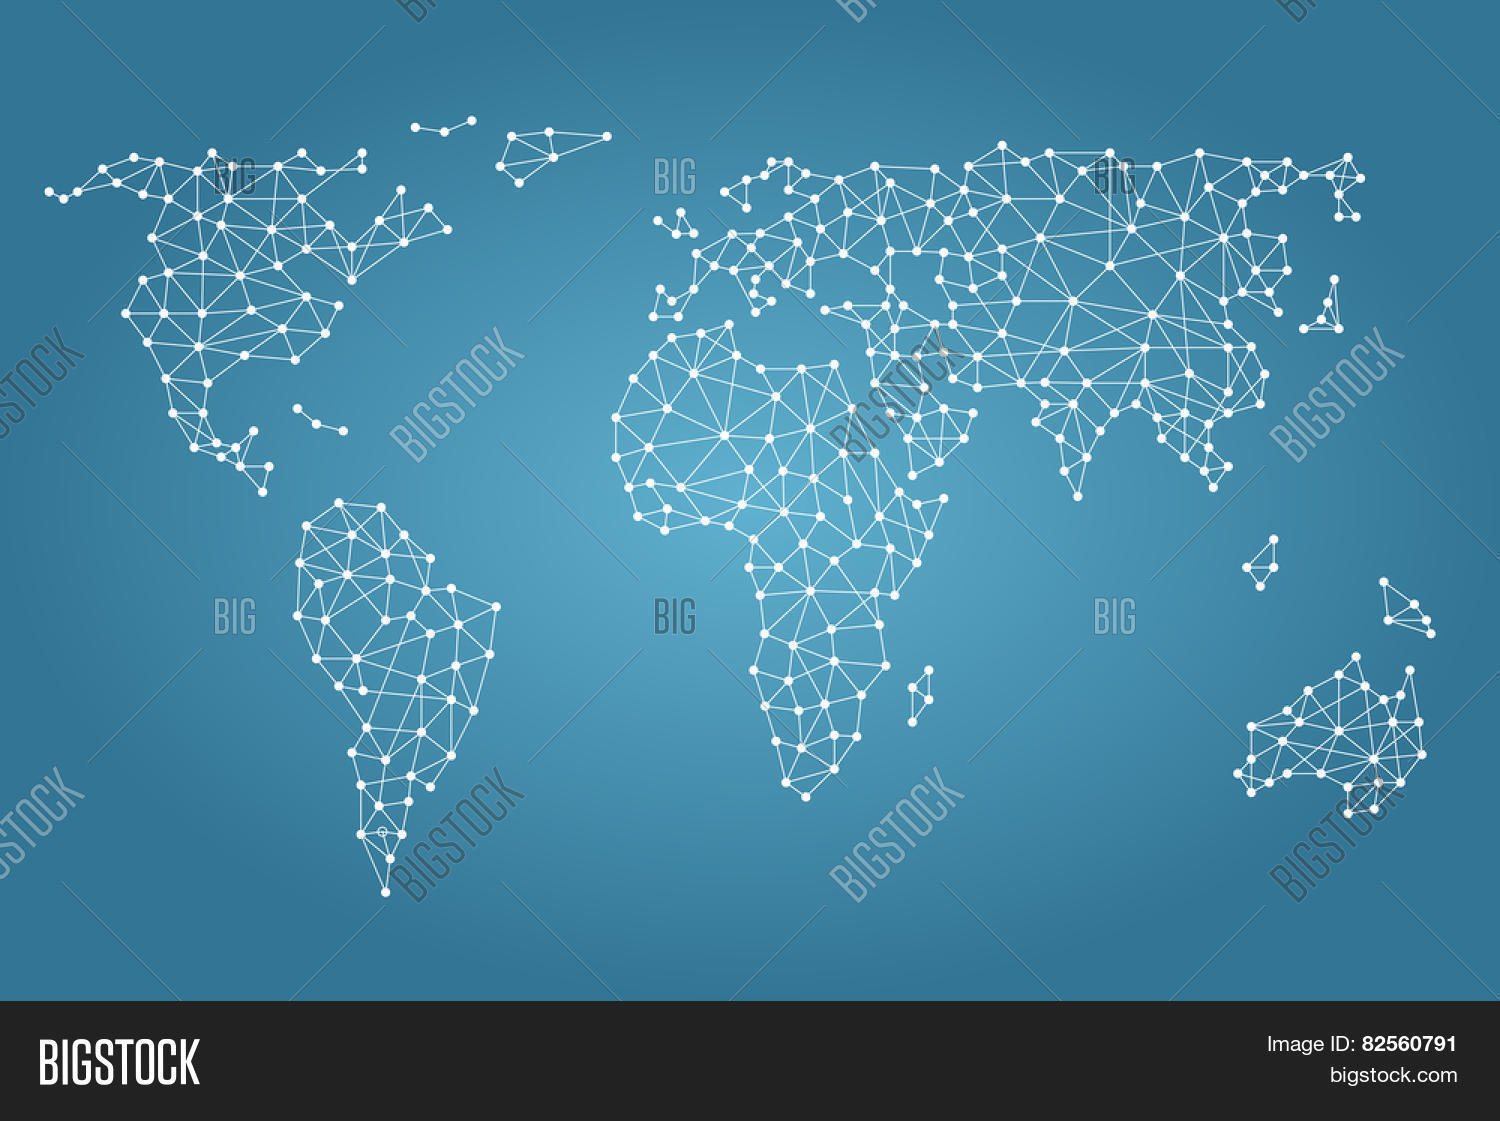 Vector y foto social media prueba gratis bigstock social media network world map with nodes linked by lines gumiabroncs Image collections